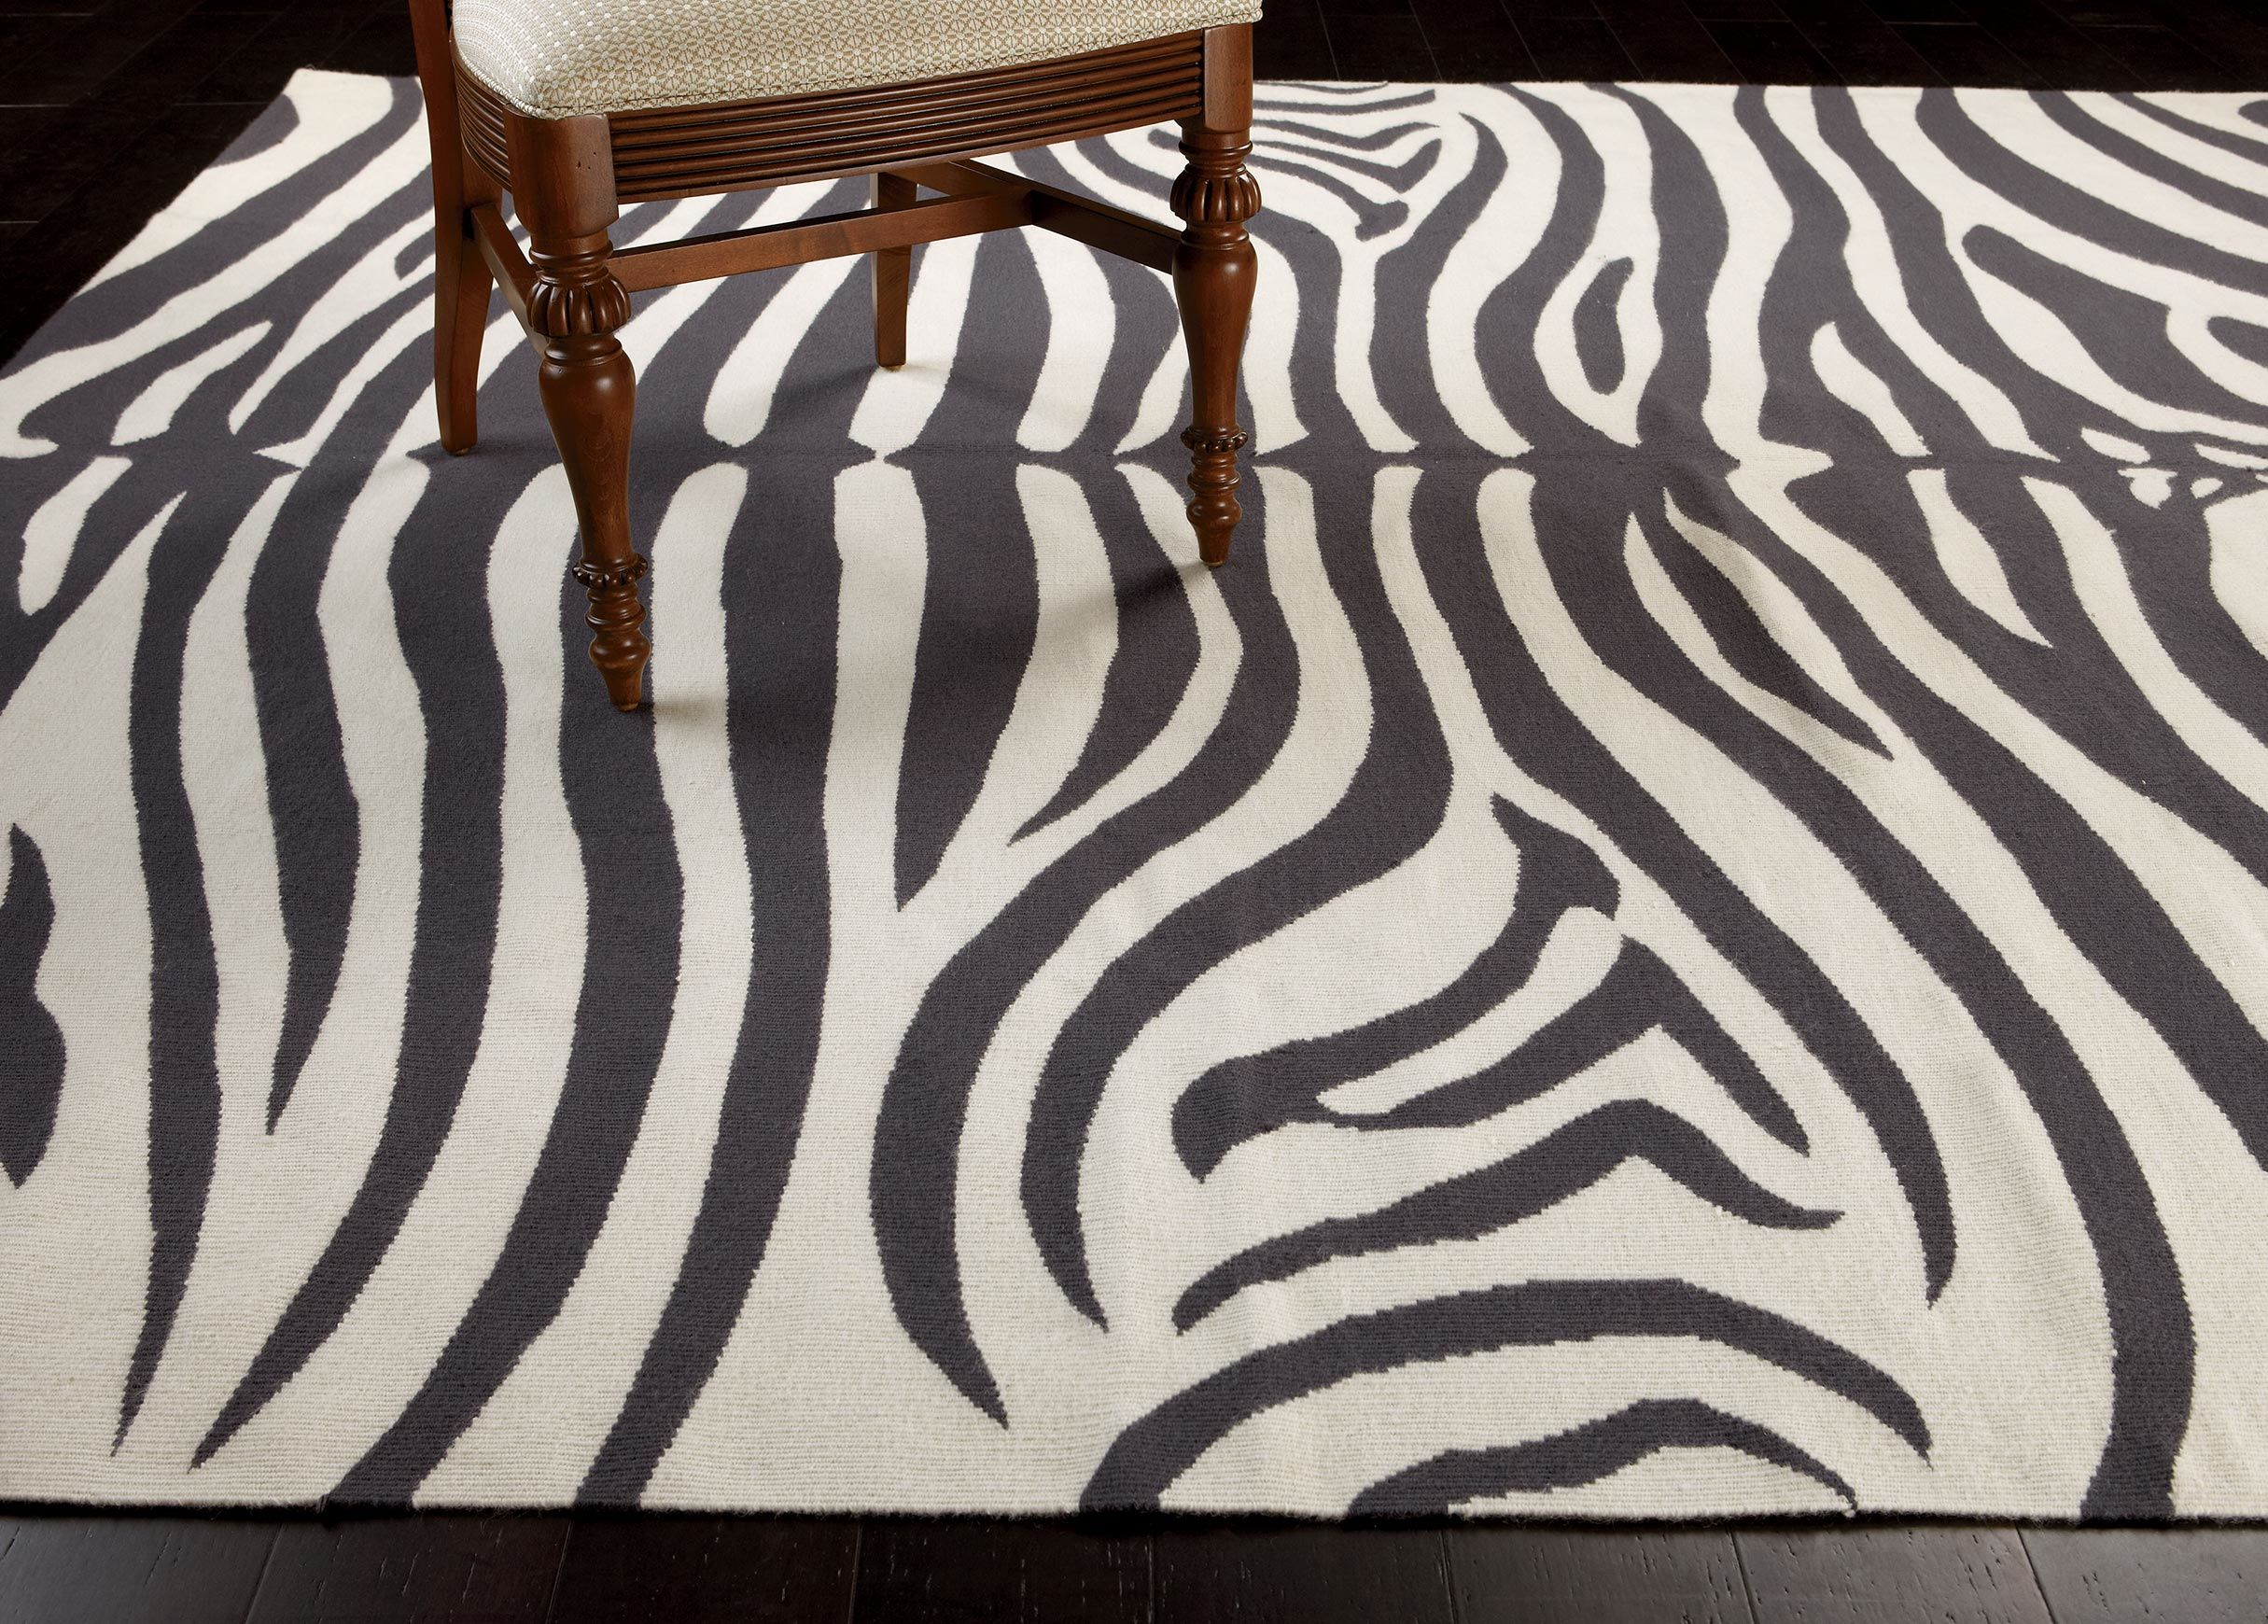 Exquisite zebra rug for floorings and rugs ideas with zebra skin rug